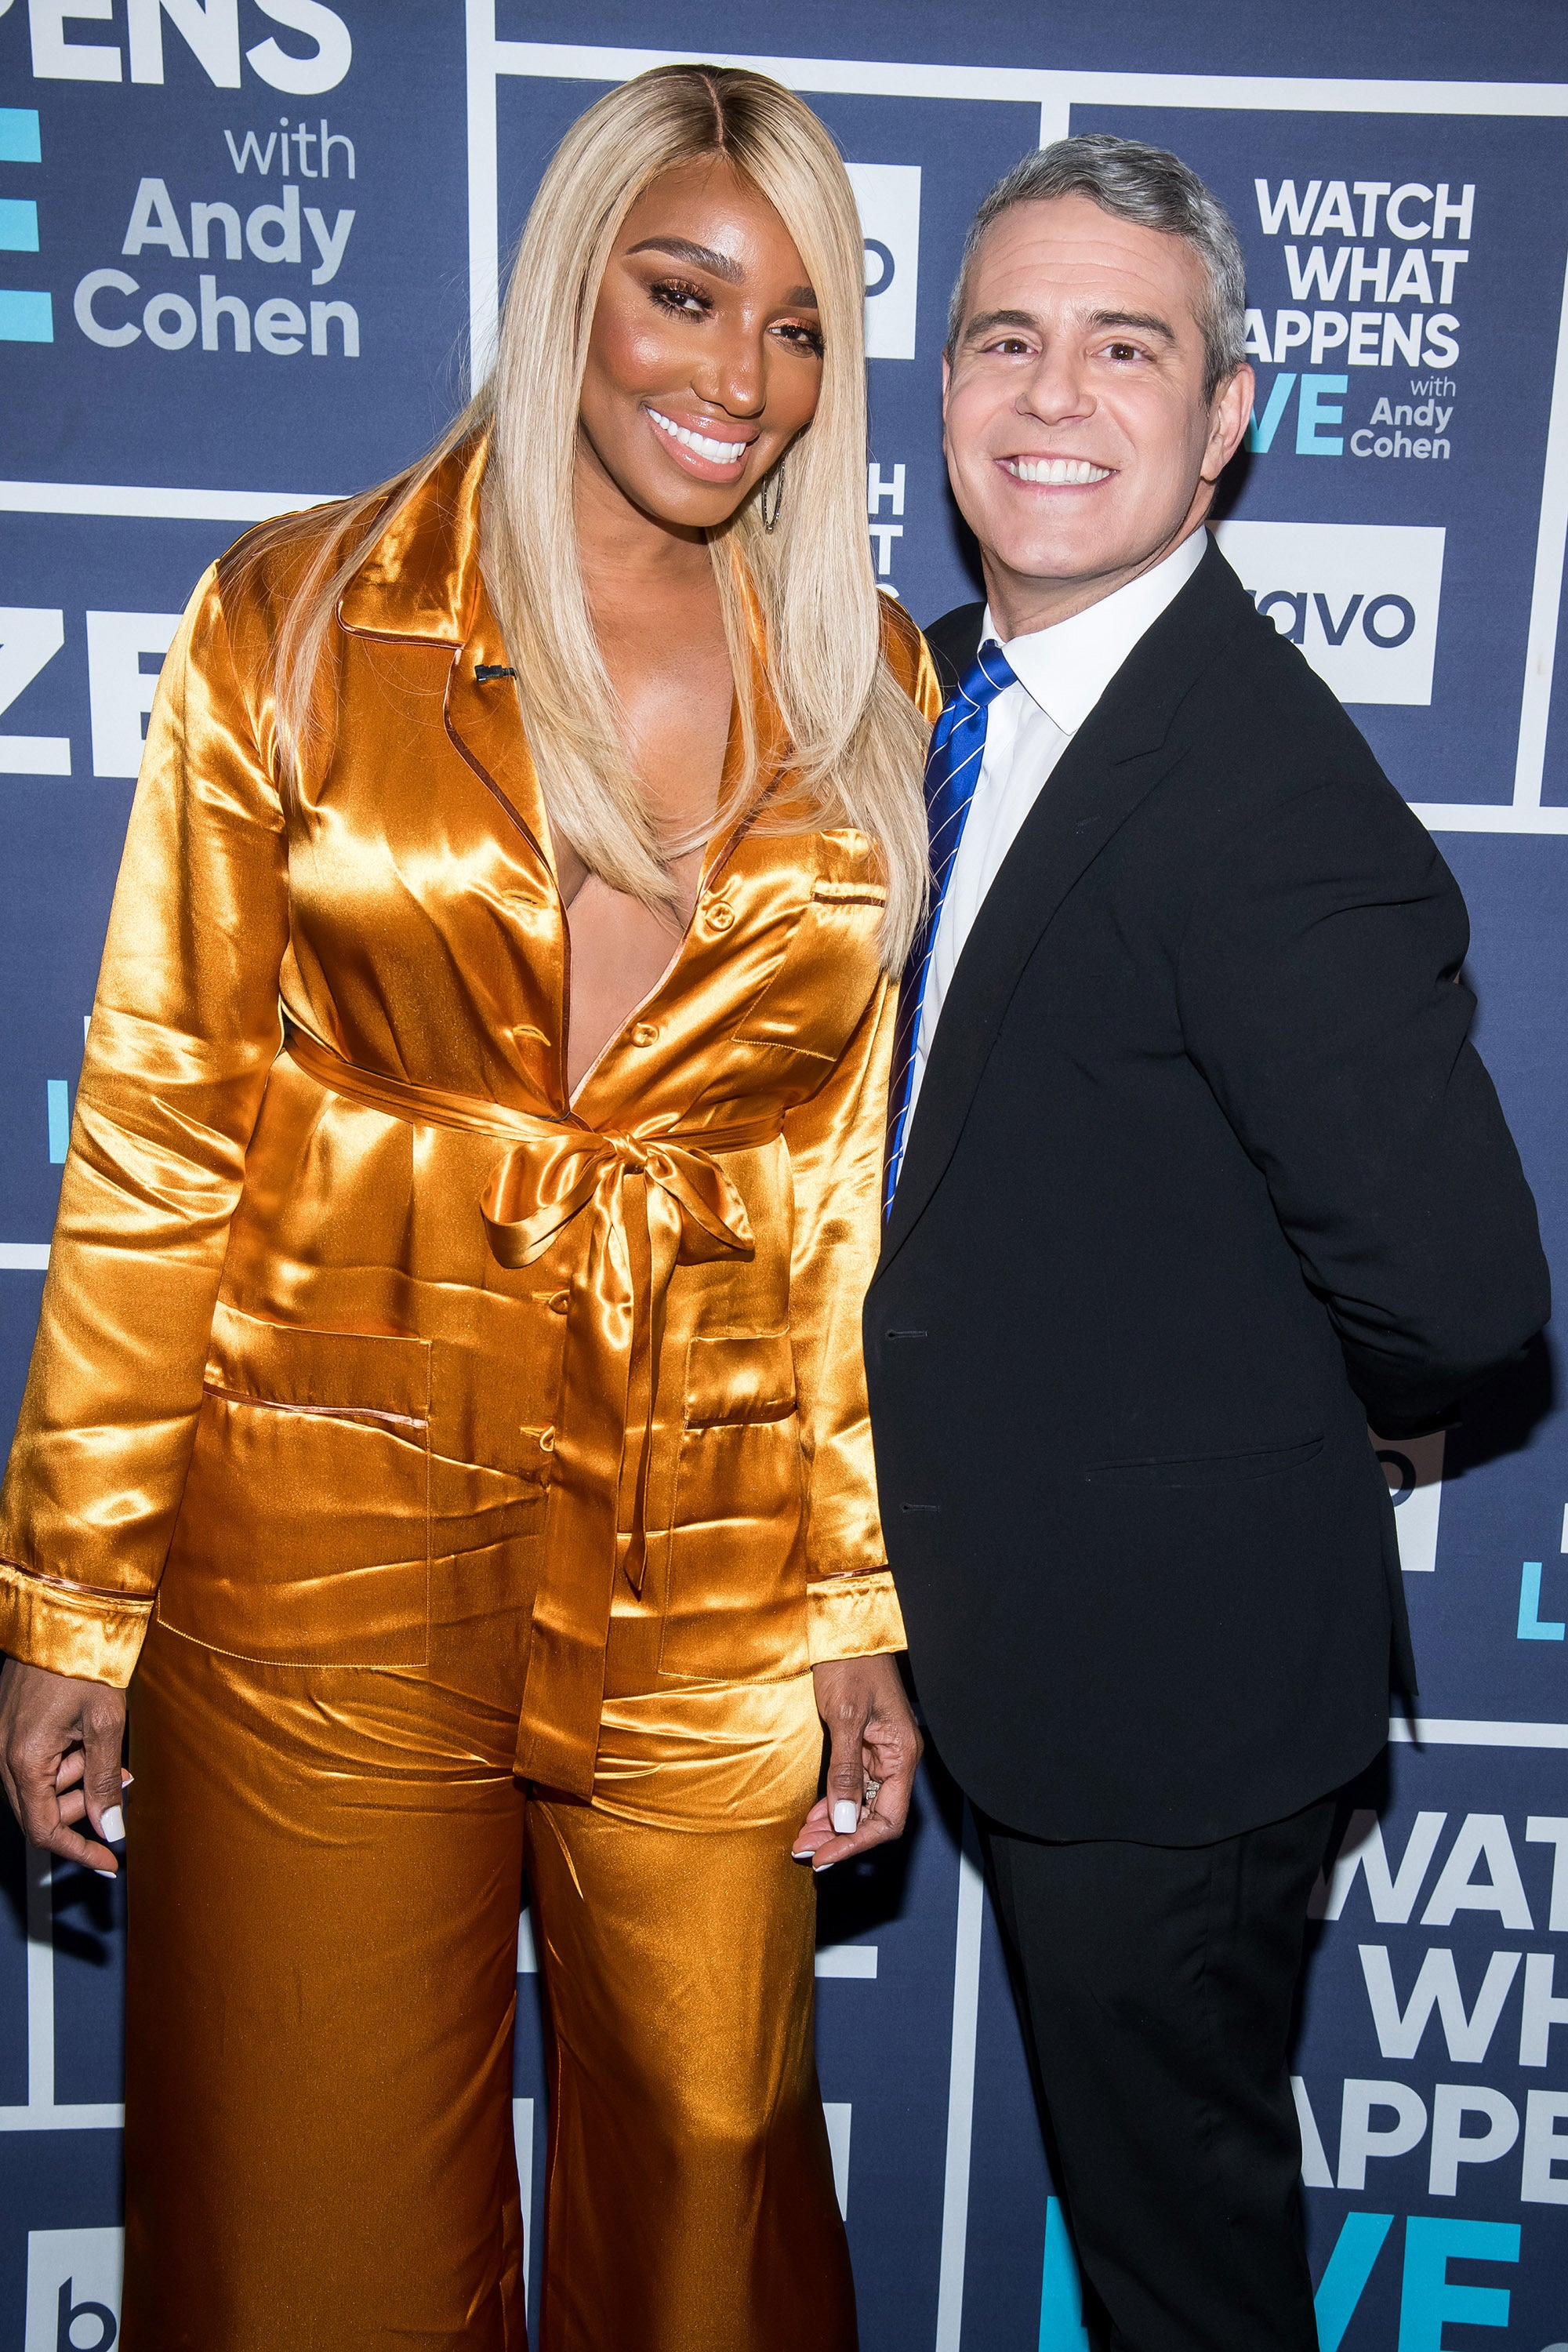 NeNe Leakes Calls Out Andy Cohen for Comment on Her Dress